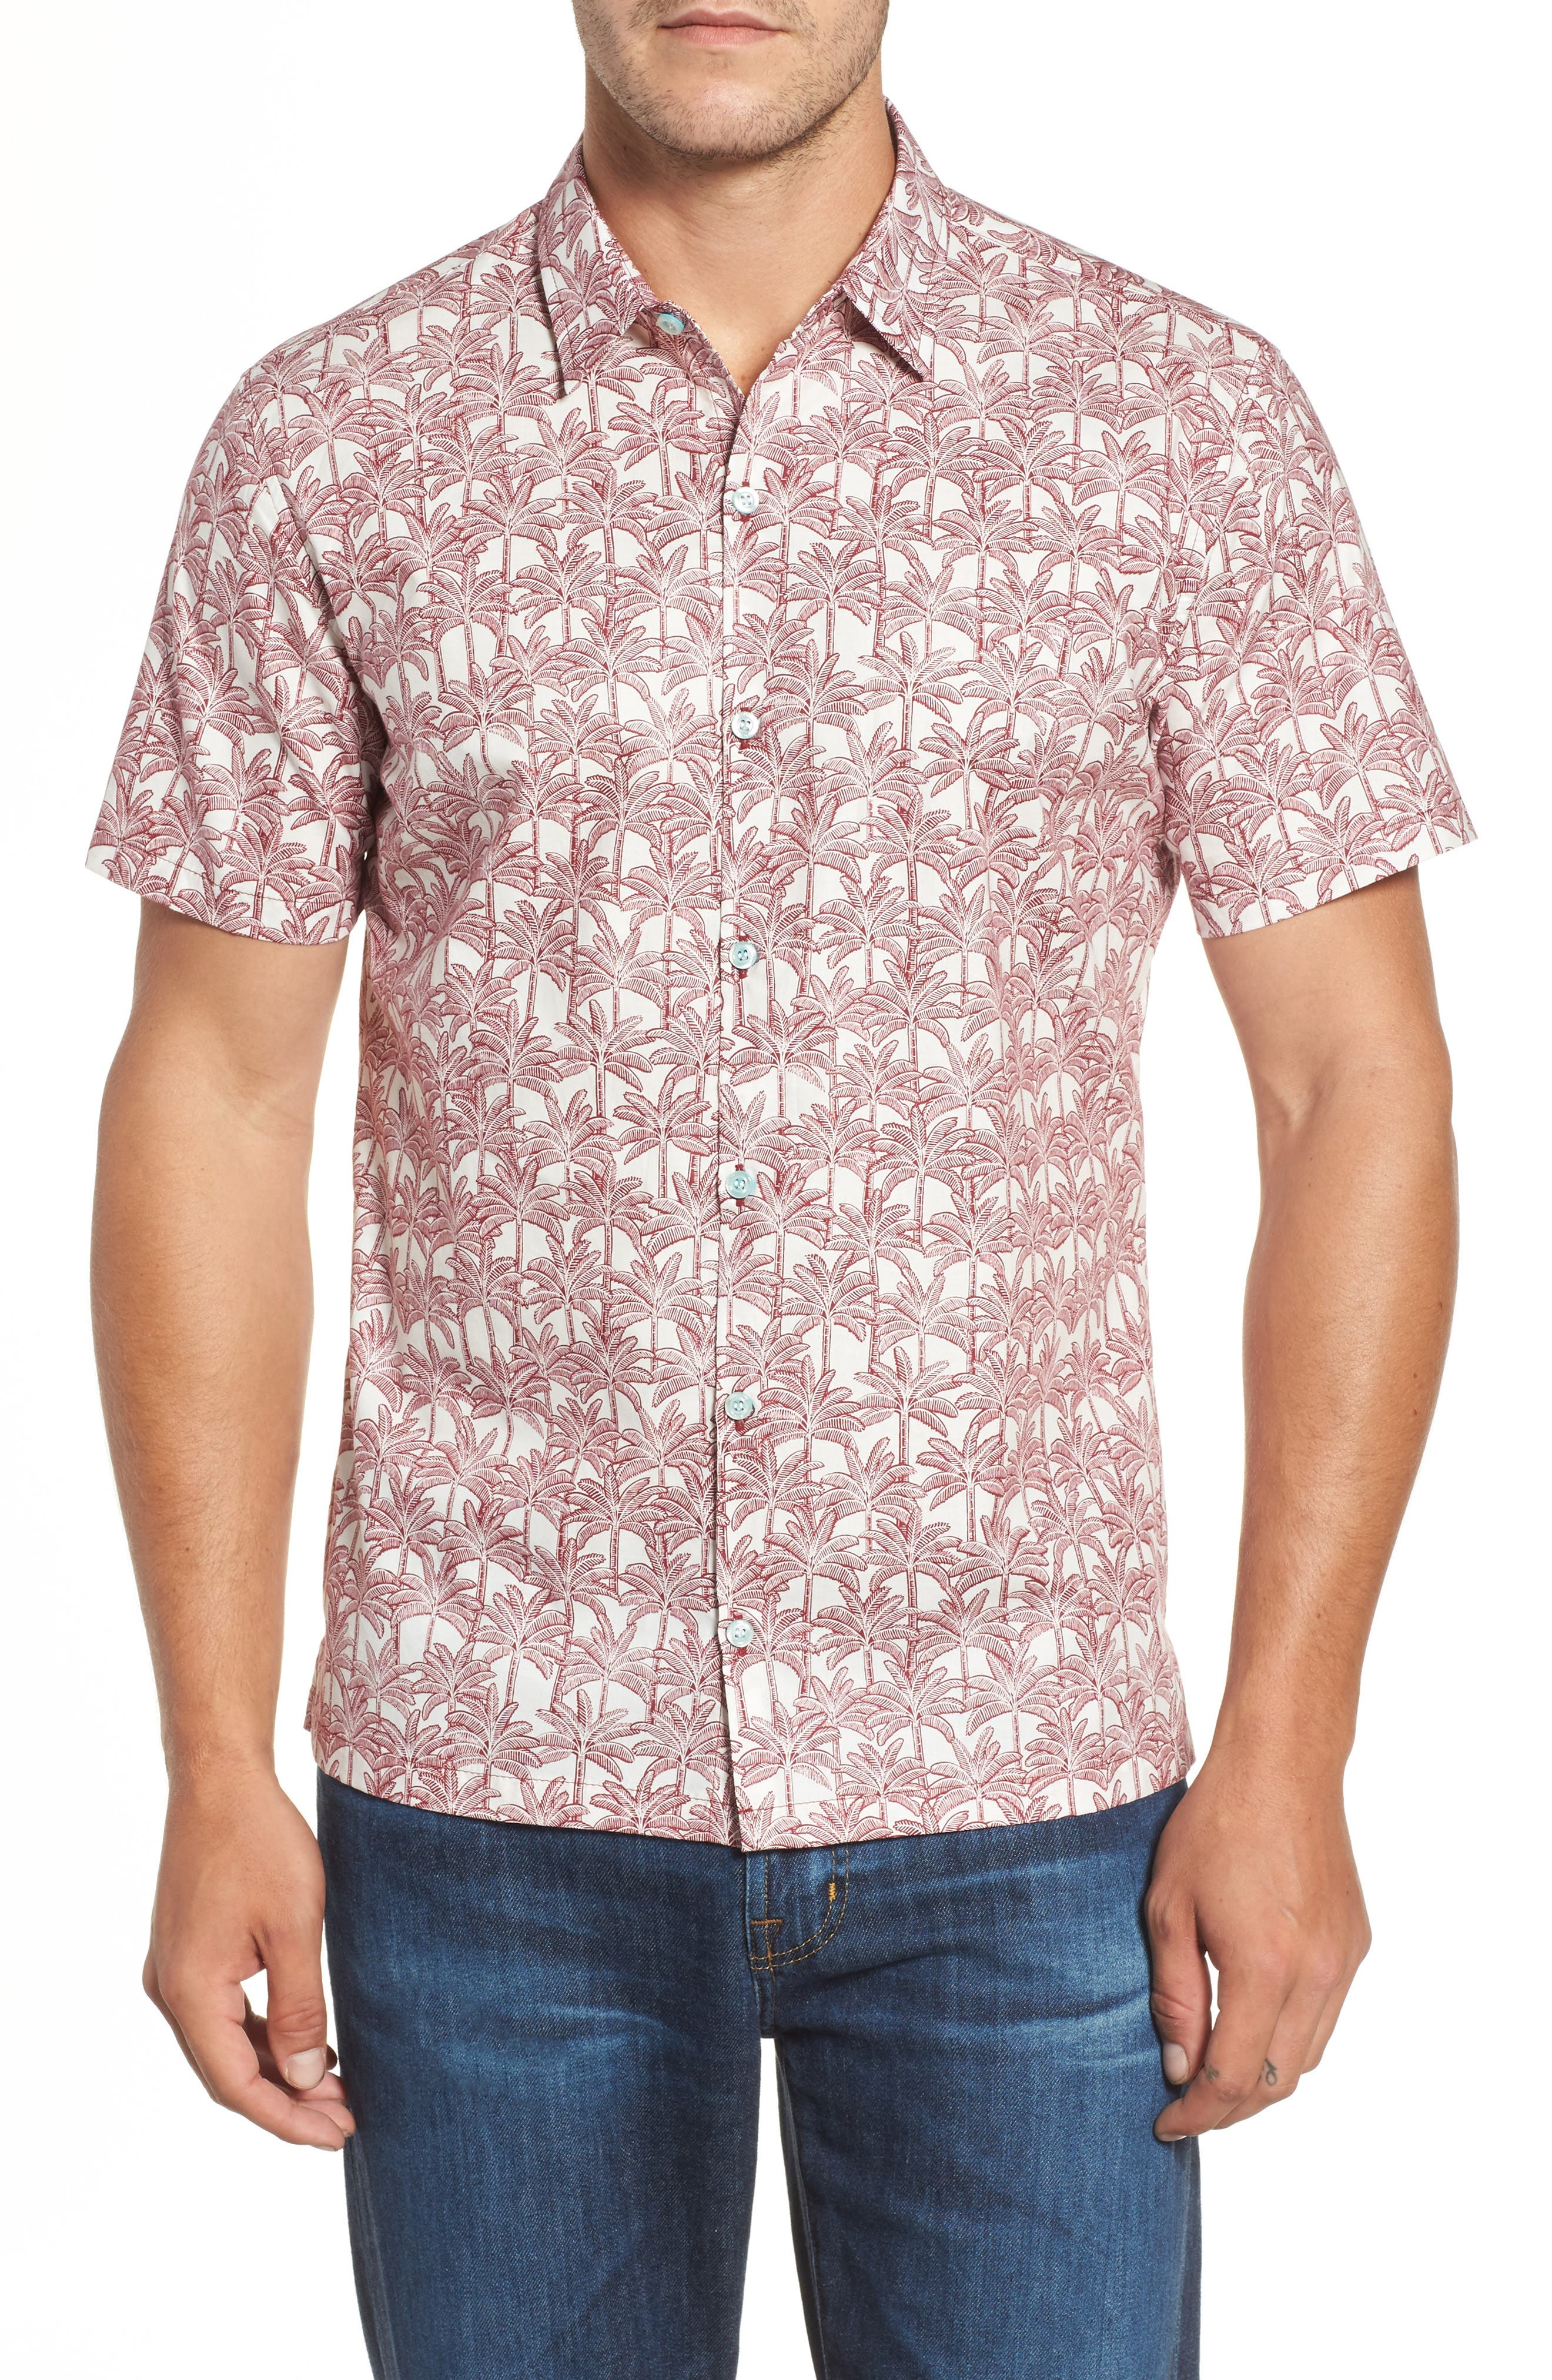 Tori Richard La Palma Regular Fit Print Sport Shirt